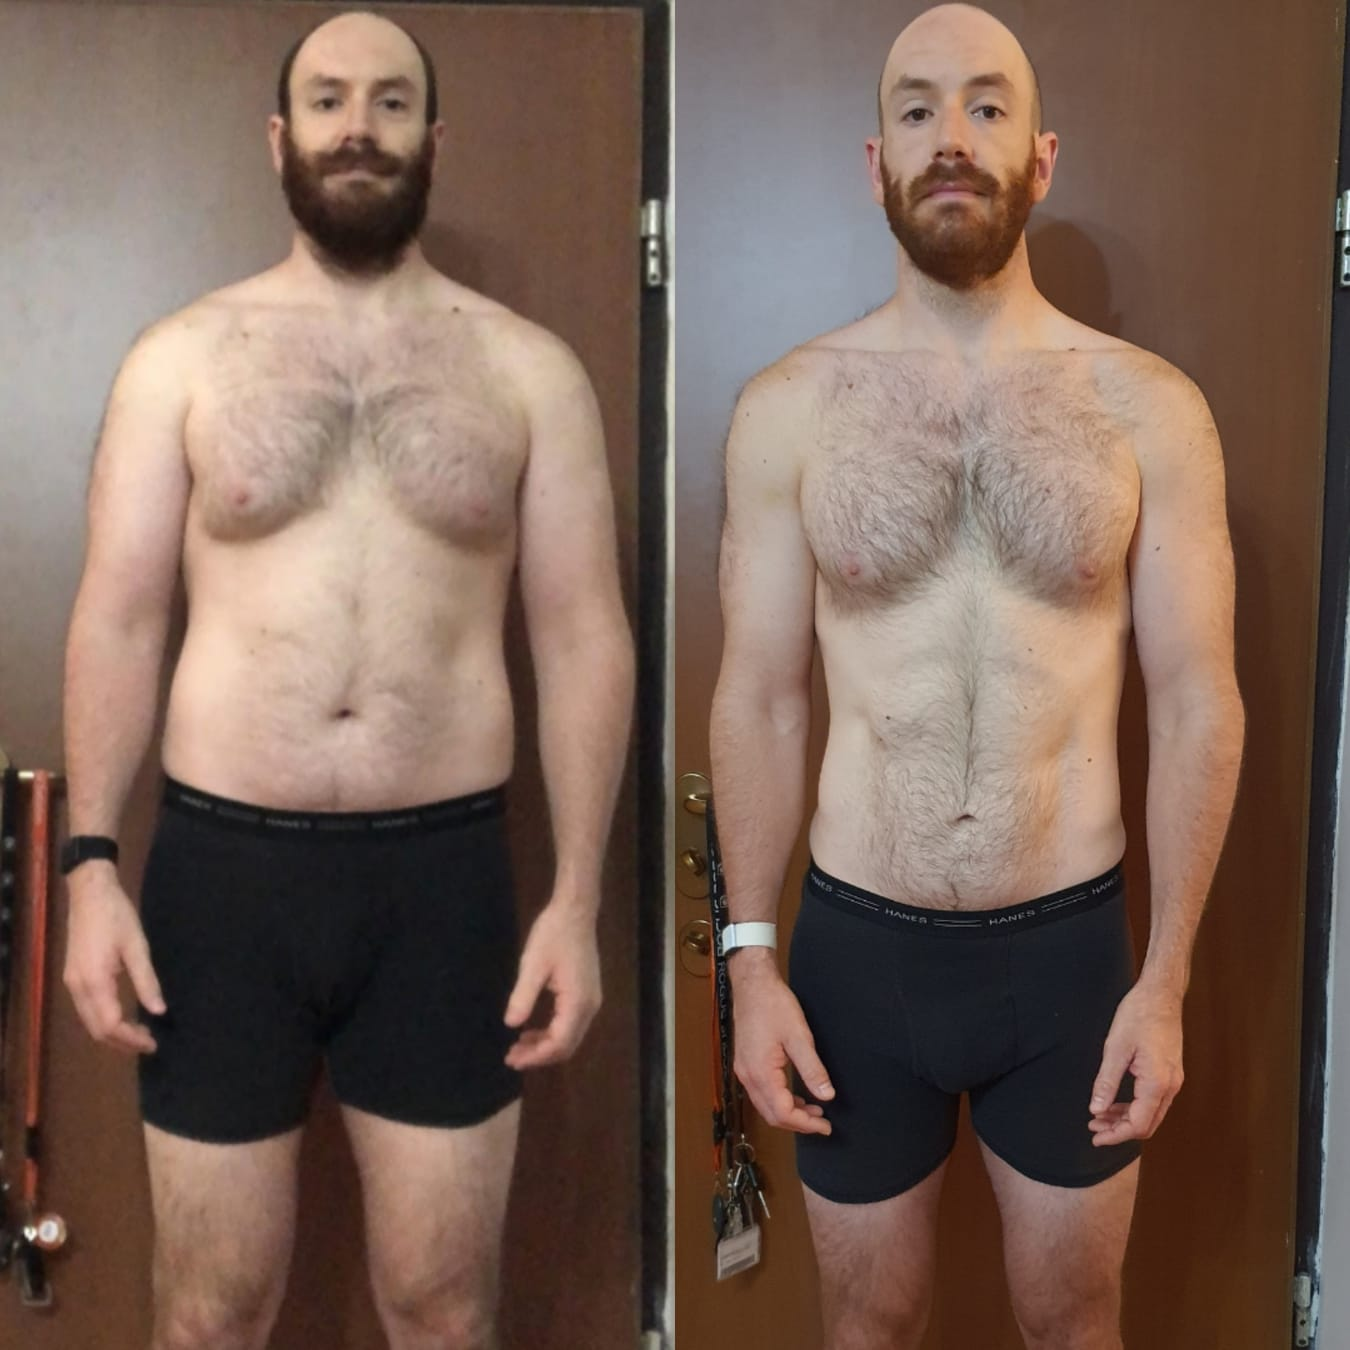 metabolic performance protocol transformation fat loss before after